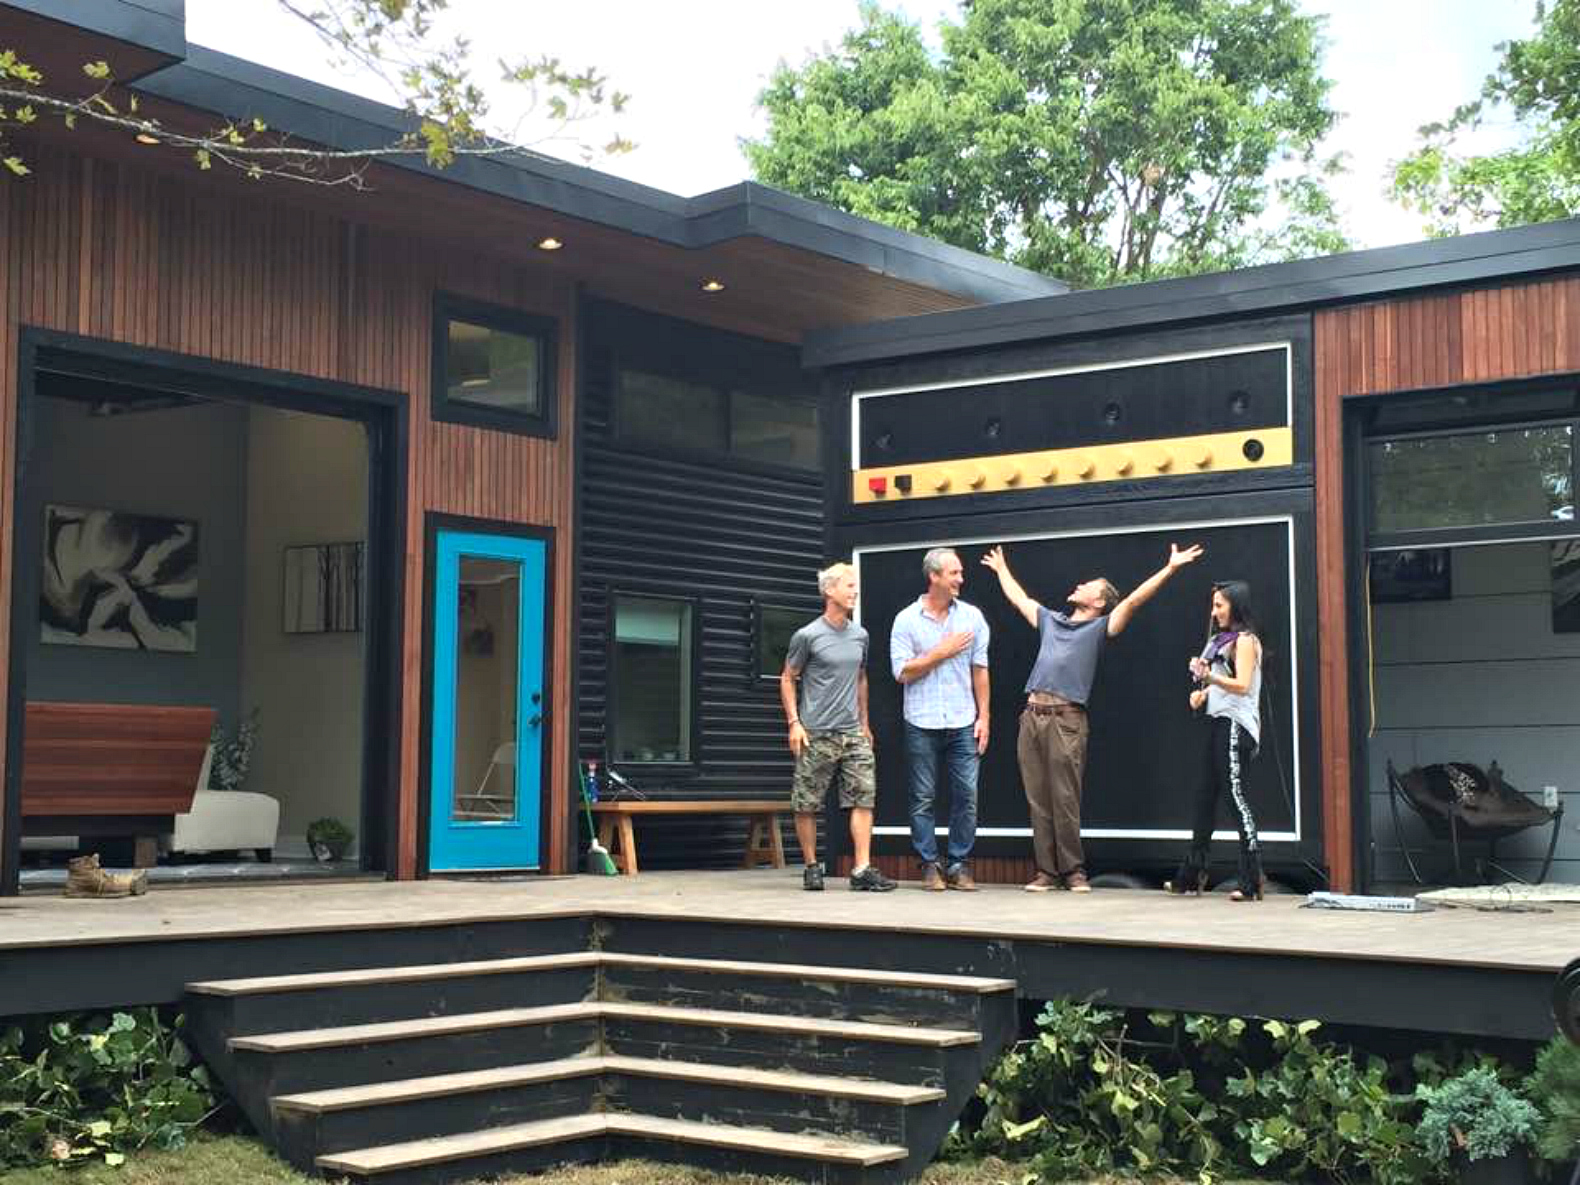 Rock Violinist Asha Mevlana S Tiny Home Voted 1 On Dwell S